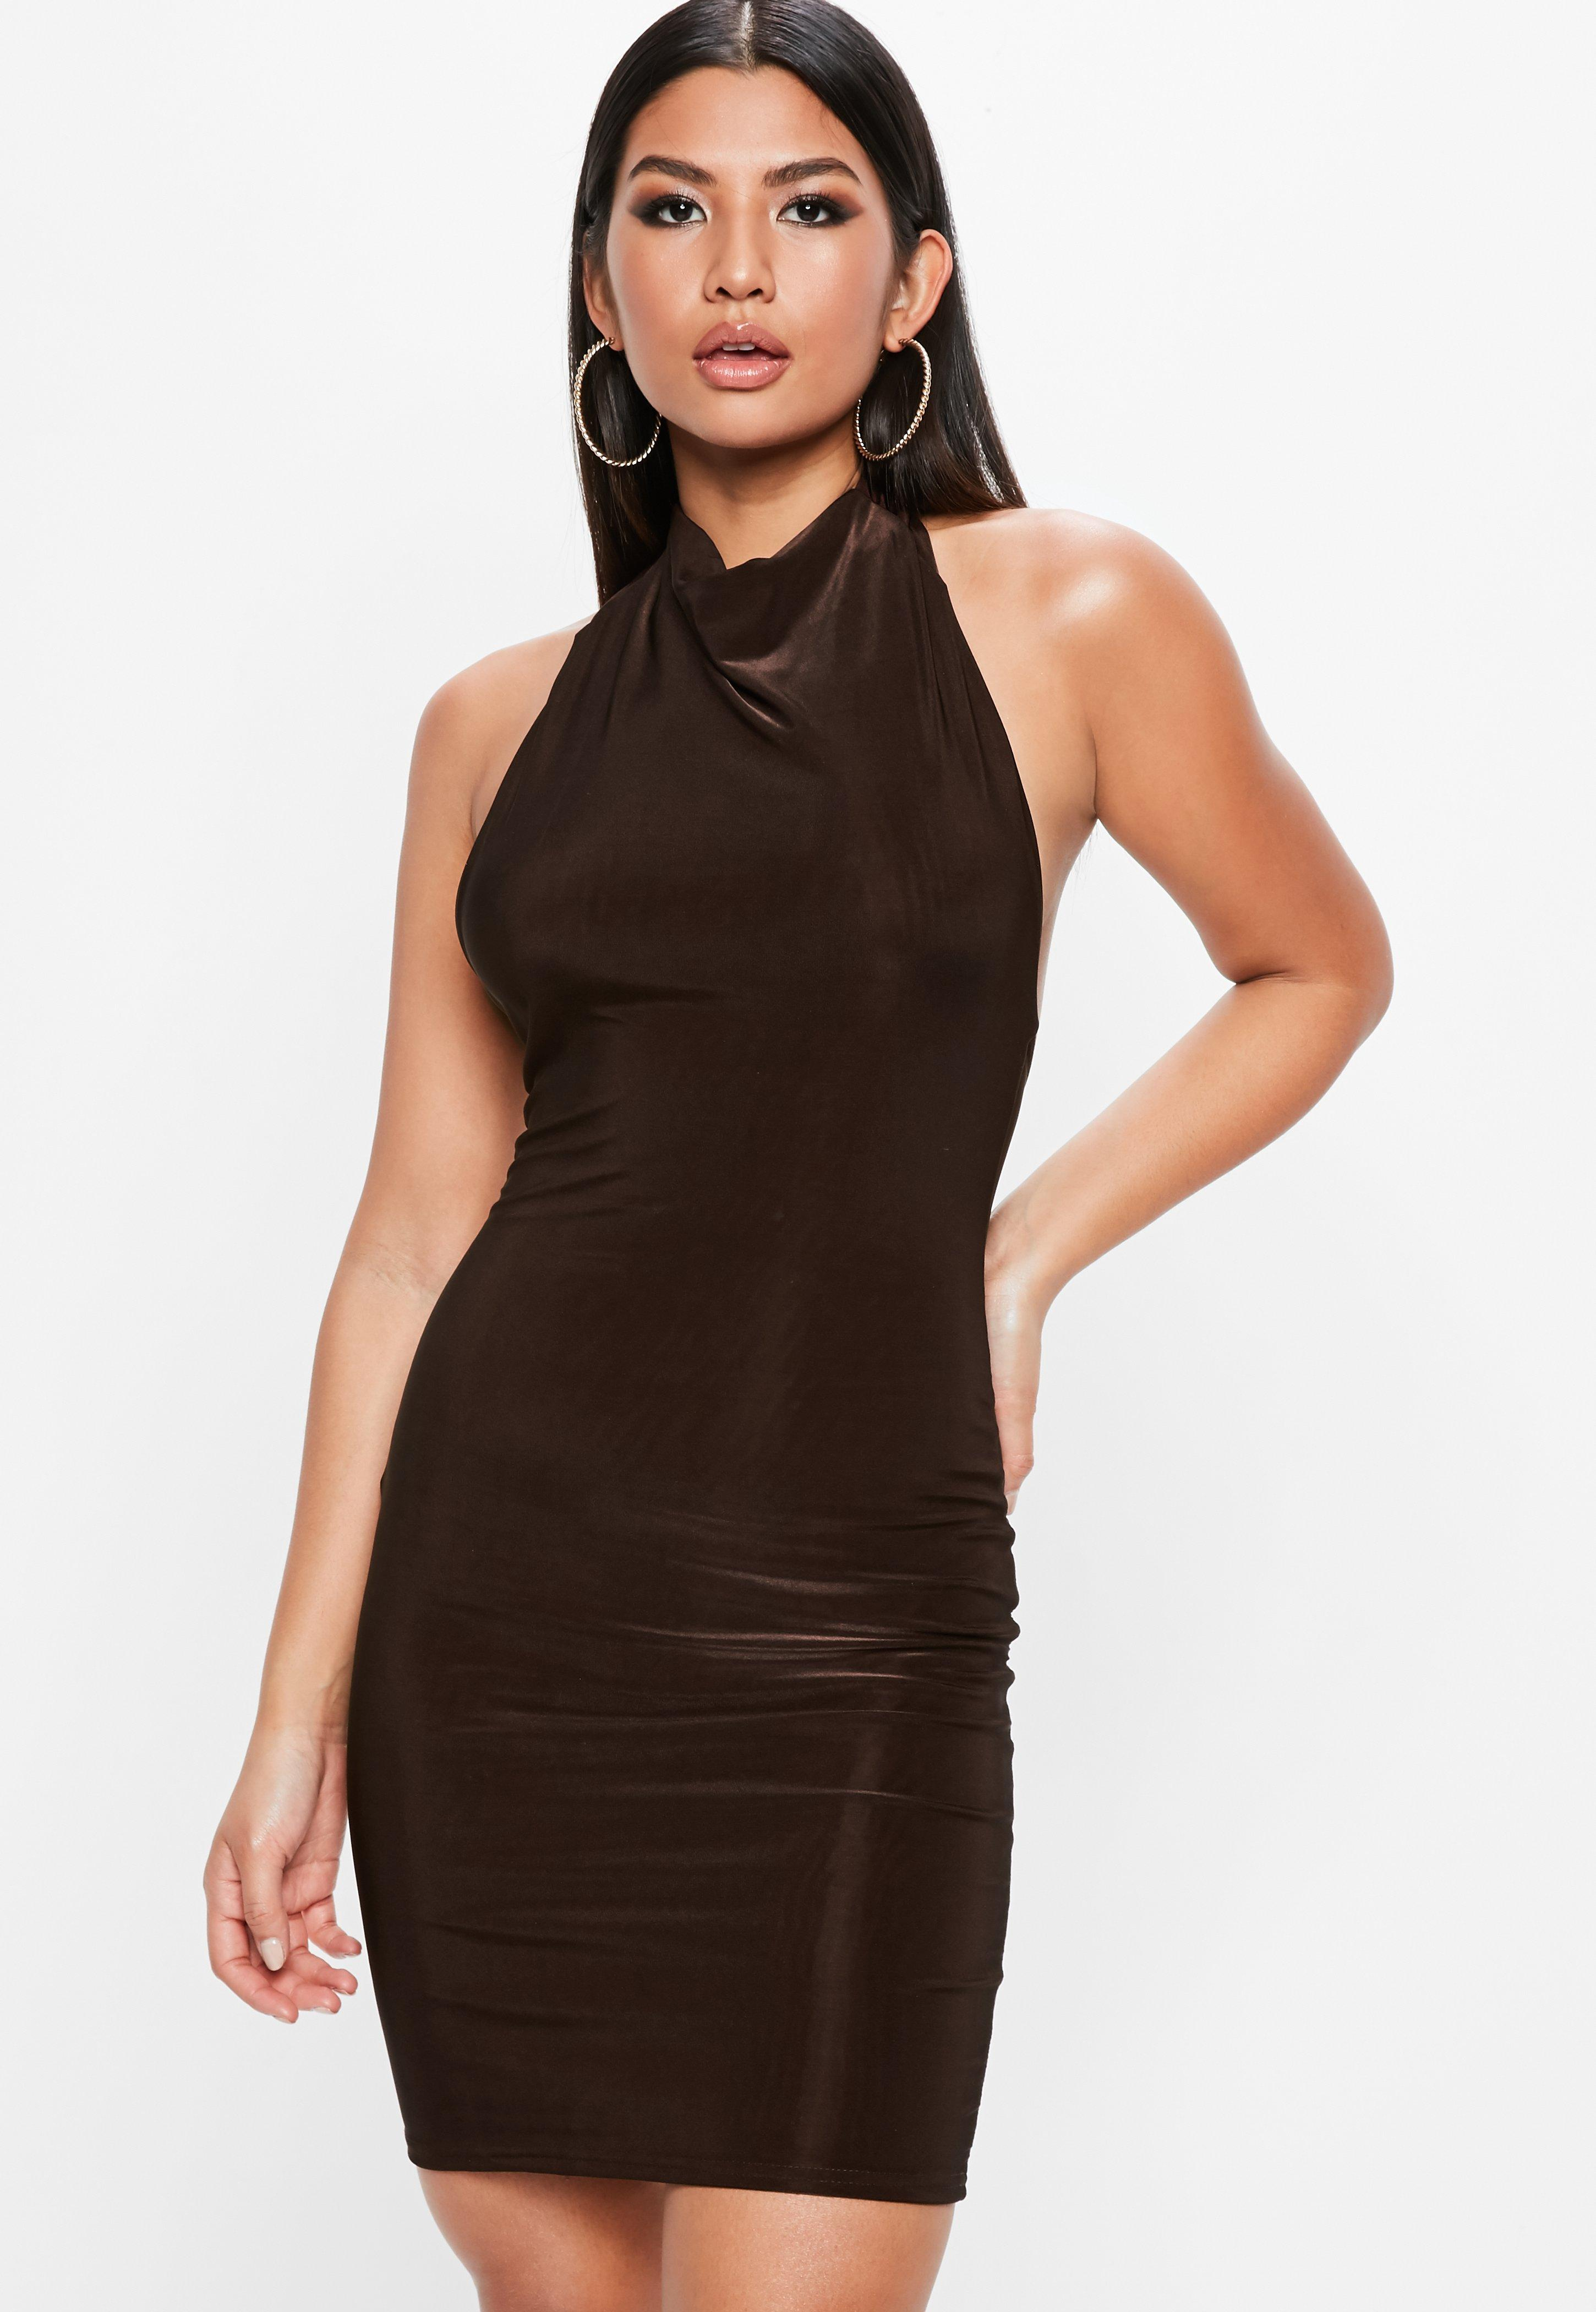 Brown Dresses | Taupe & Tan Dresses - Missguided